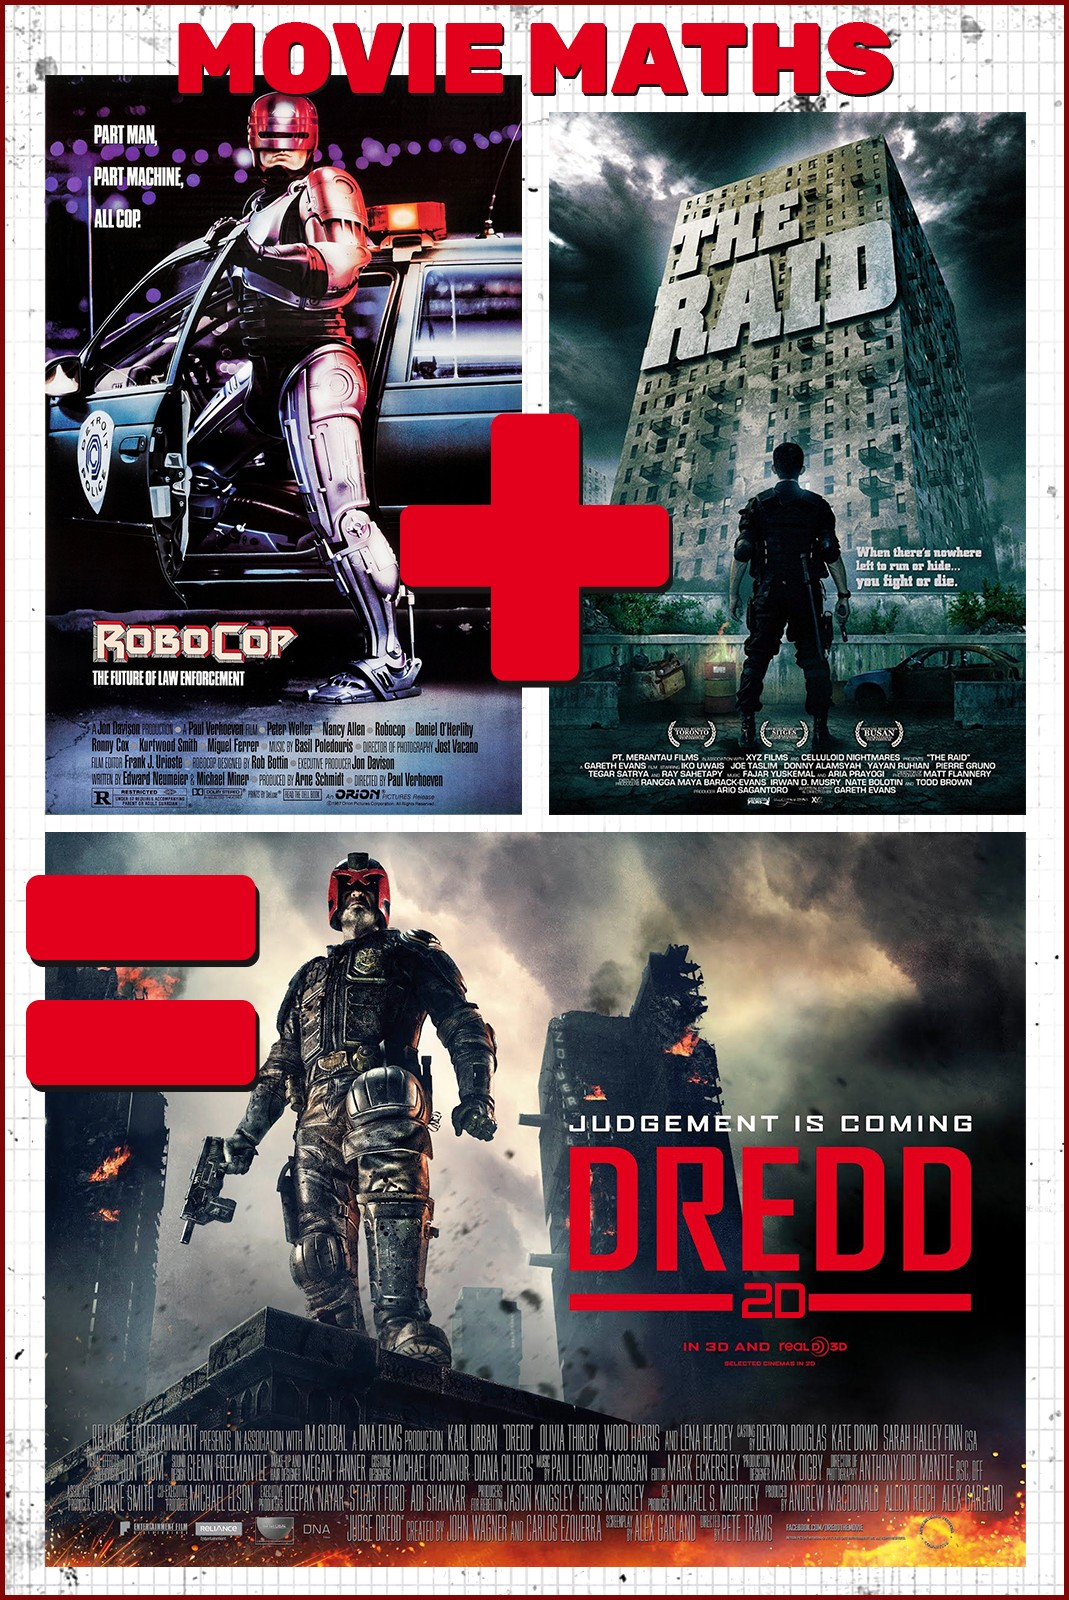 MOVIE MATHS : ROBOCOP + THE RAID = DREDD [2D]